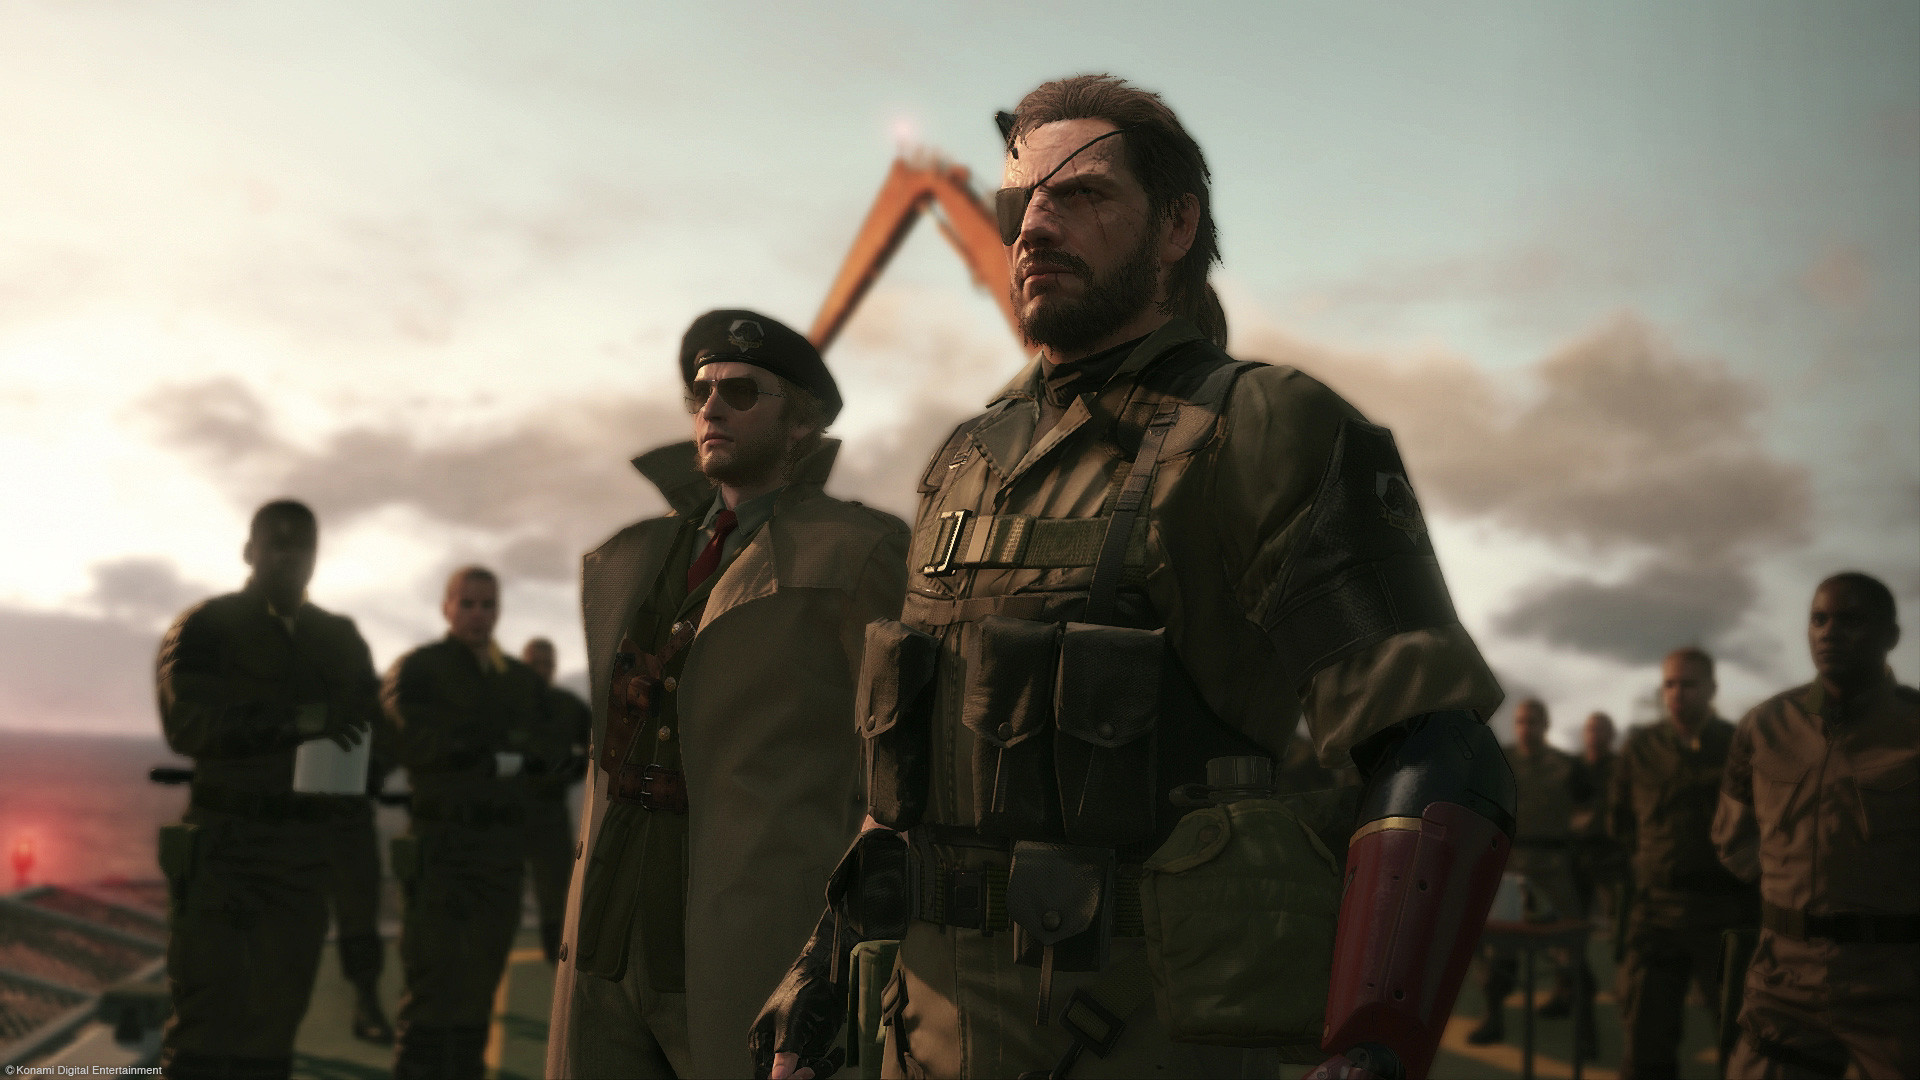 Metal Gear Solid V The Phantom Pain Secret Ending Mysteriously Triggered Mxdwn Games A secret weapon we wield, out of sight. metal gear solid v the phantom pain